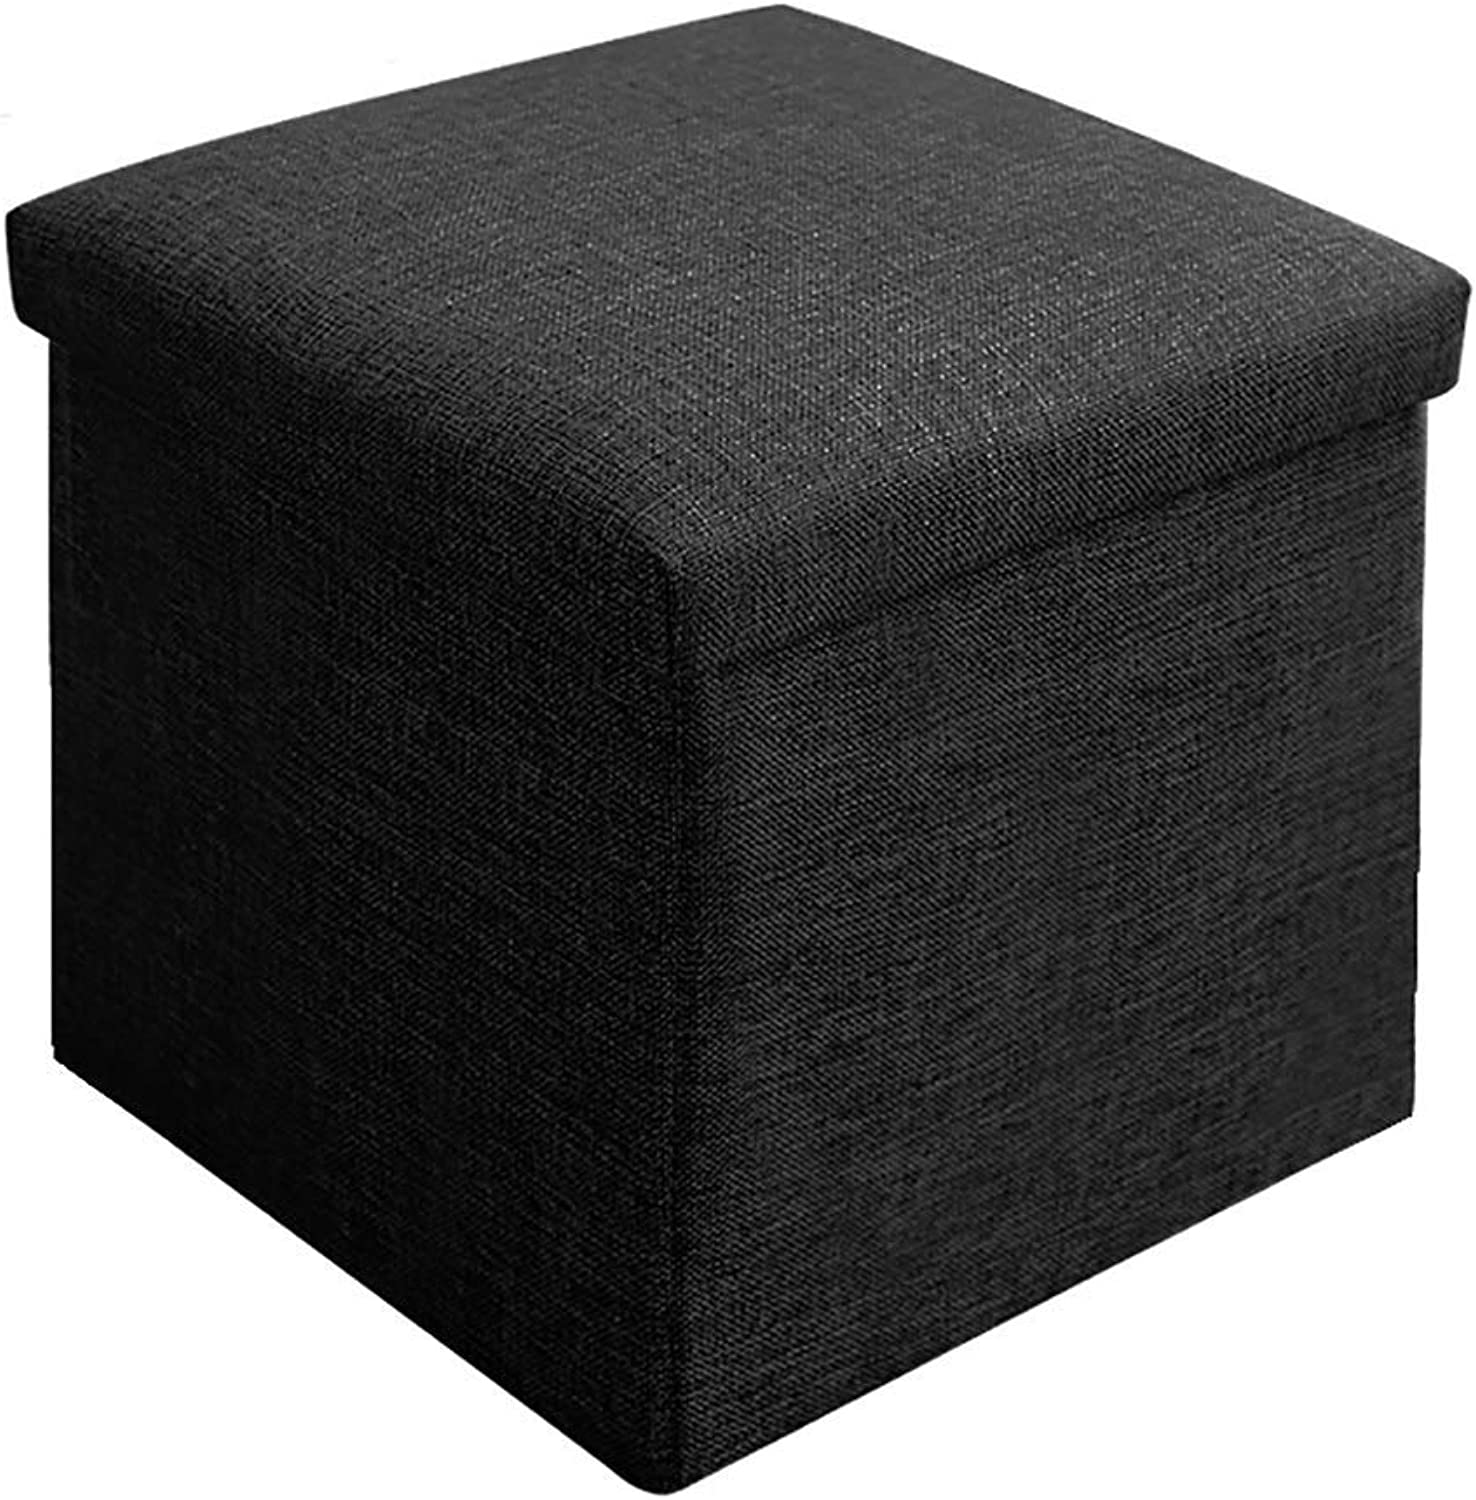 ChenDz Cute Stool Nordic Modern Minimalist shoes Bench Sofa Combination Small Square Stool Personality Foot Stool Light Luxury Living Room Fabric Stool (color   Black)